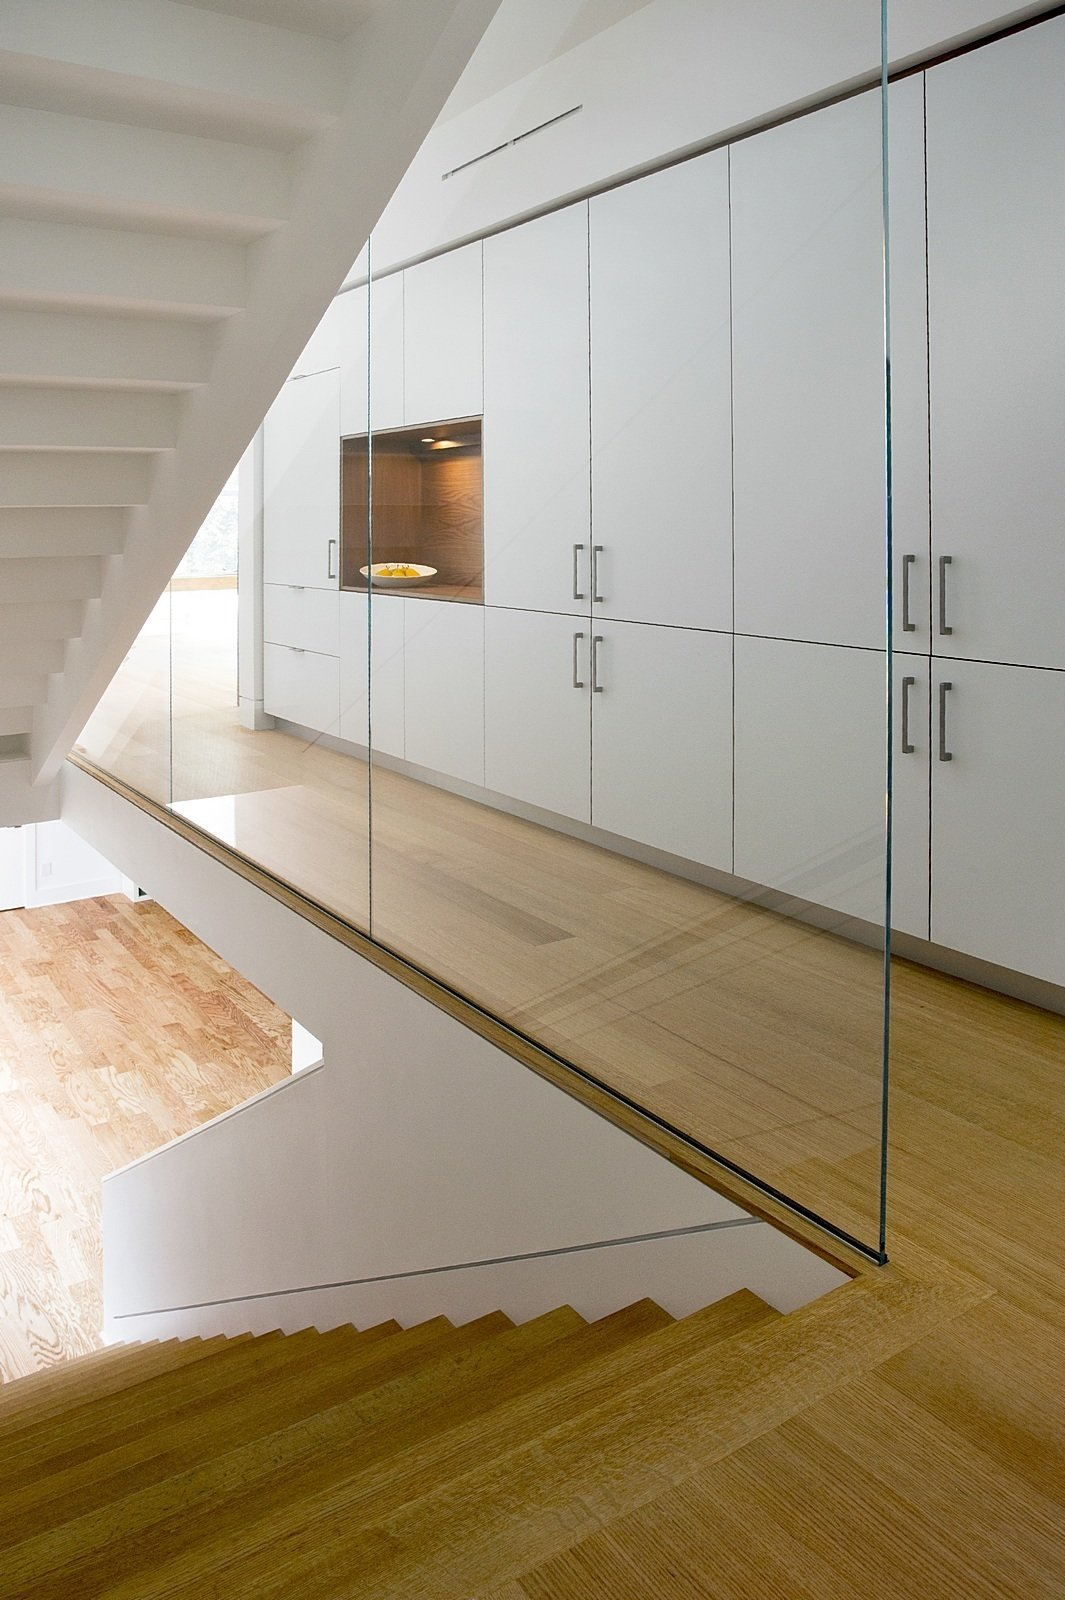 Staircase, Wood Tread, and Glass Railing A custom staircase with wood risers is encased by glass panels. A wall of Henrybuilt's kitchen system adds storage to the hallway.  Hallways That Impress from A Modern Green Home in a Historic Colonial Town